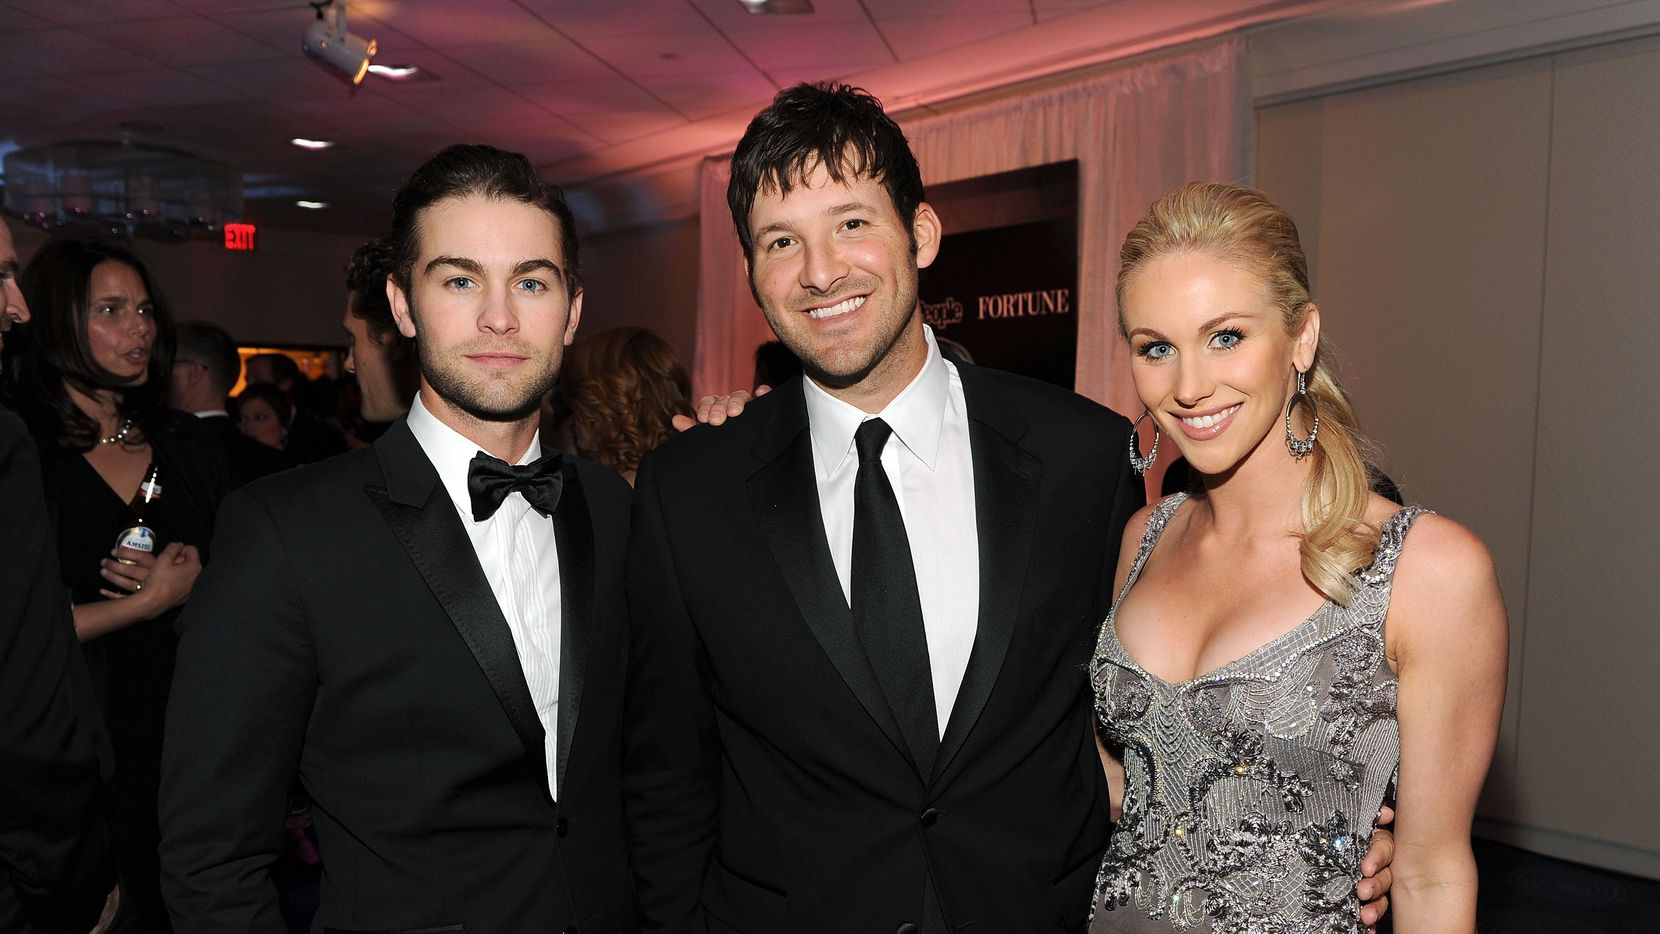 WASHINGTON, DC - APRIL 30:  (L-R)  Actor Chace Crawford, NFL player Tony Romo and Candice Crawford attend the TIME/CNN/People/Fortune White House Correspondents' dinner cocktail party at the Washington Hilton on April 30, 2011 in Washington, DC.  (Photo by Larry Busacca/Getty Images for TIME) *** Local Caption *** Chace Crawford;Tony Romo;Candice Crawford;